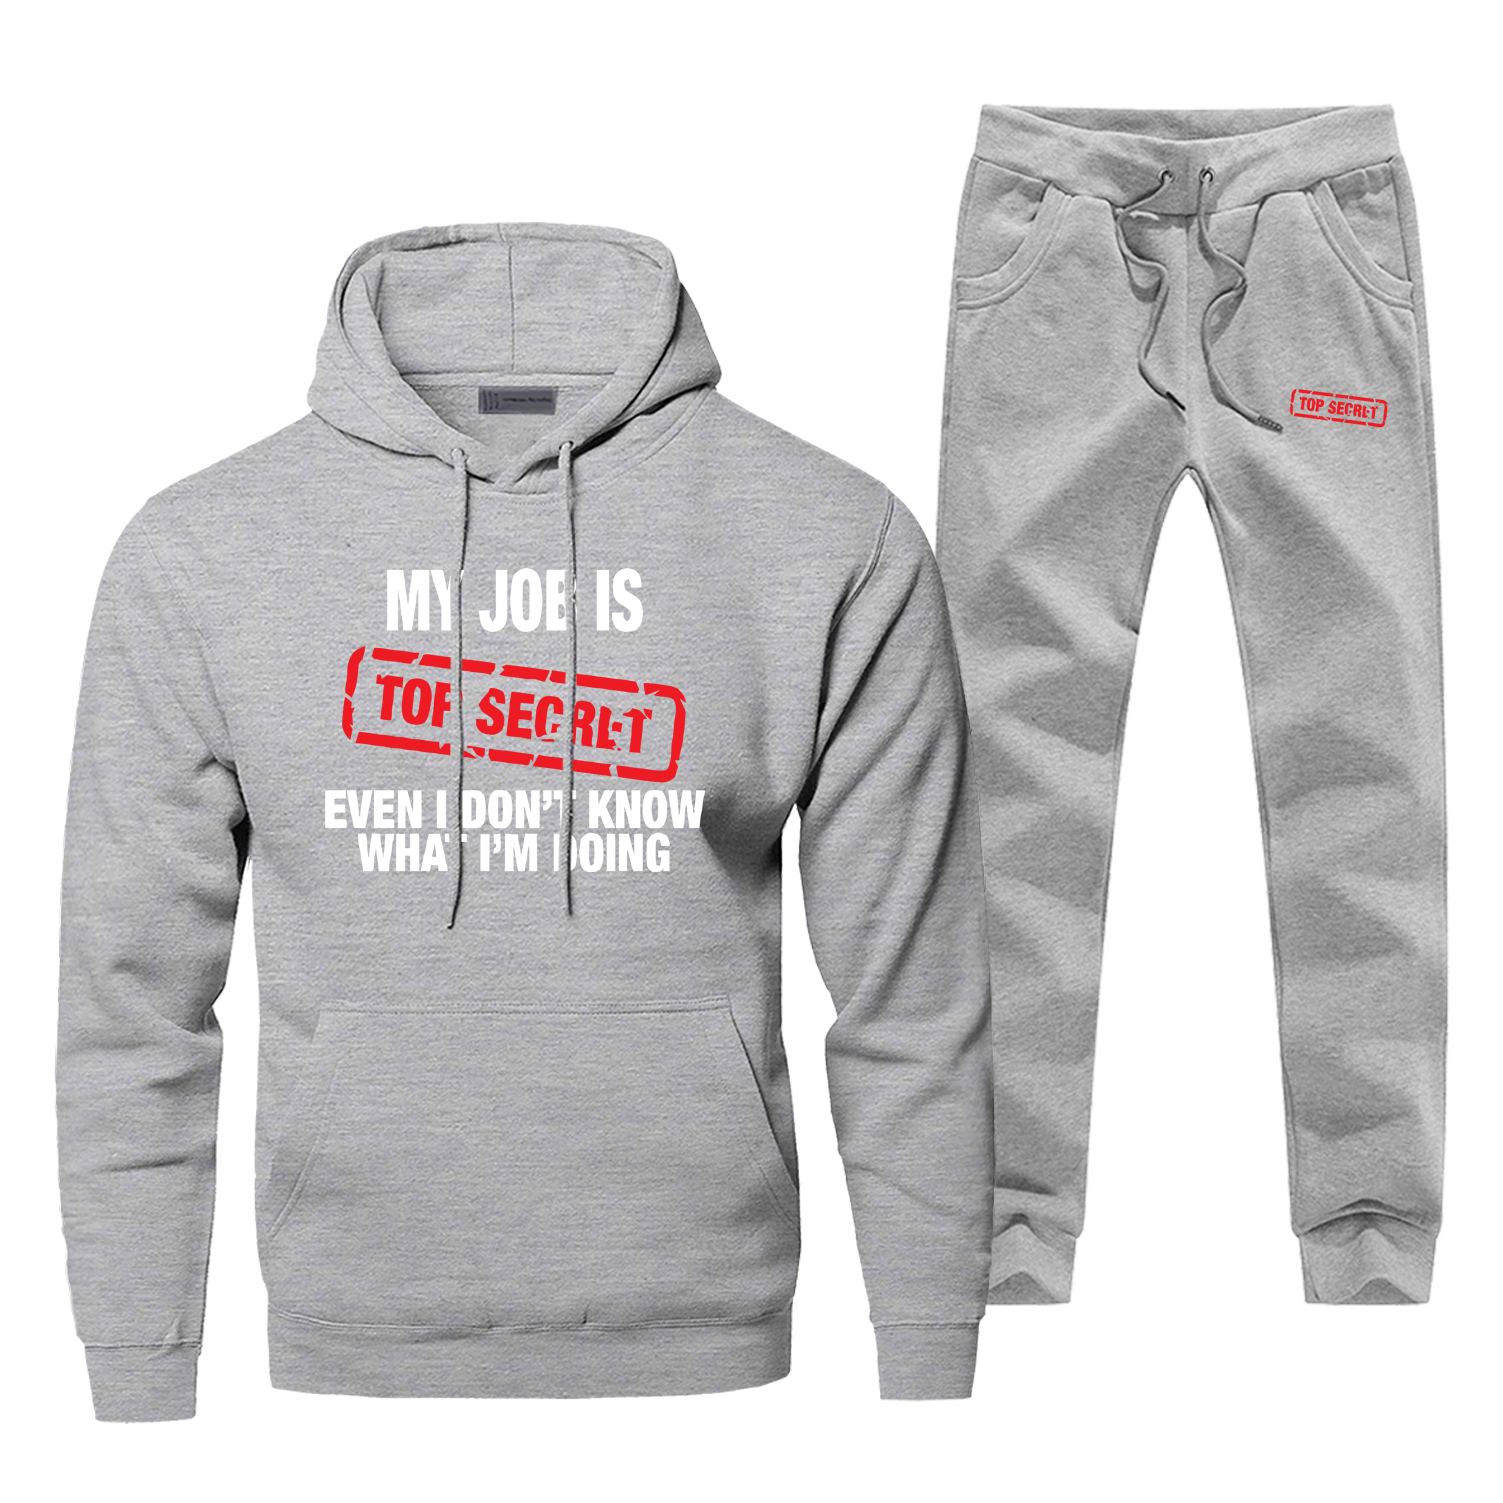 Funny Letter Print Gray Men's Sets Casual Fashion My Job Is Top Secre Men's Full Suit Tracksuit Winter Warm Comfortable Male Set